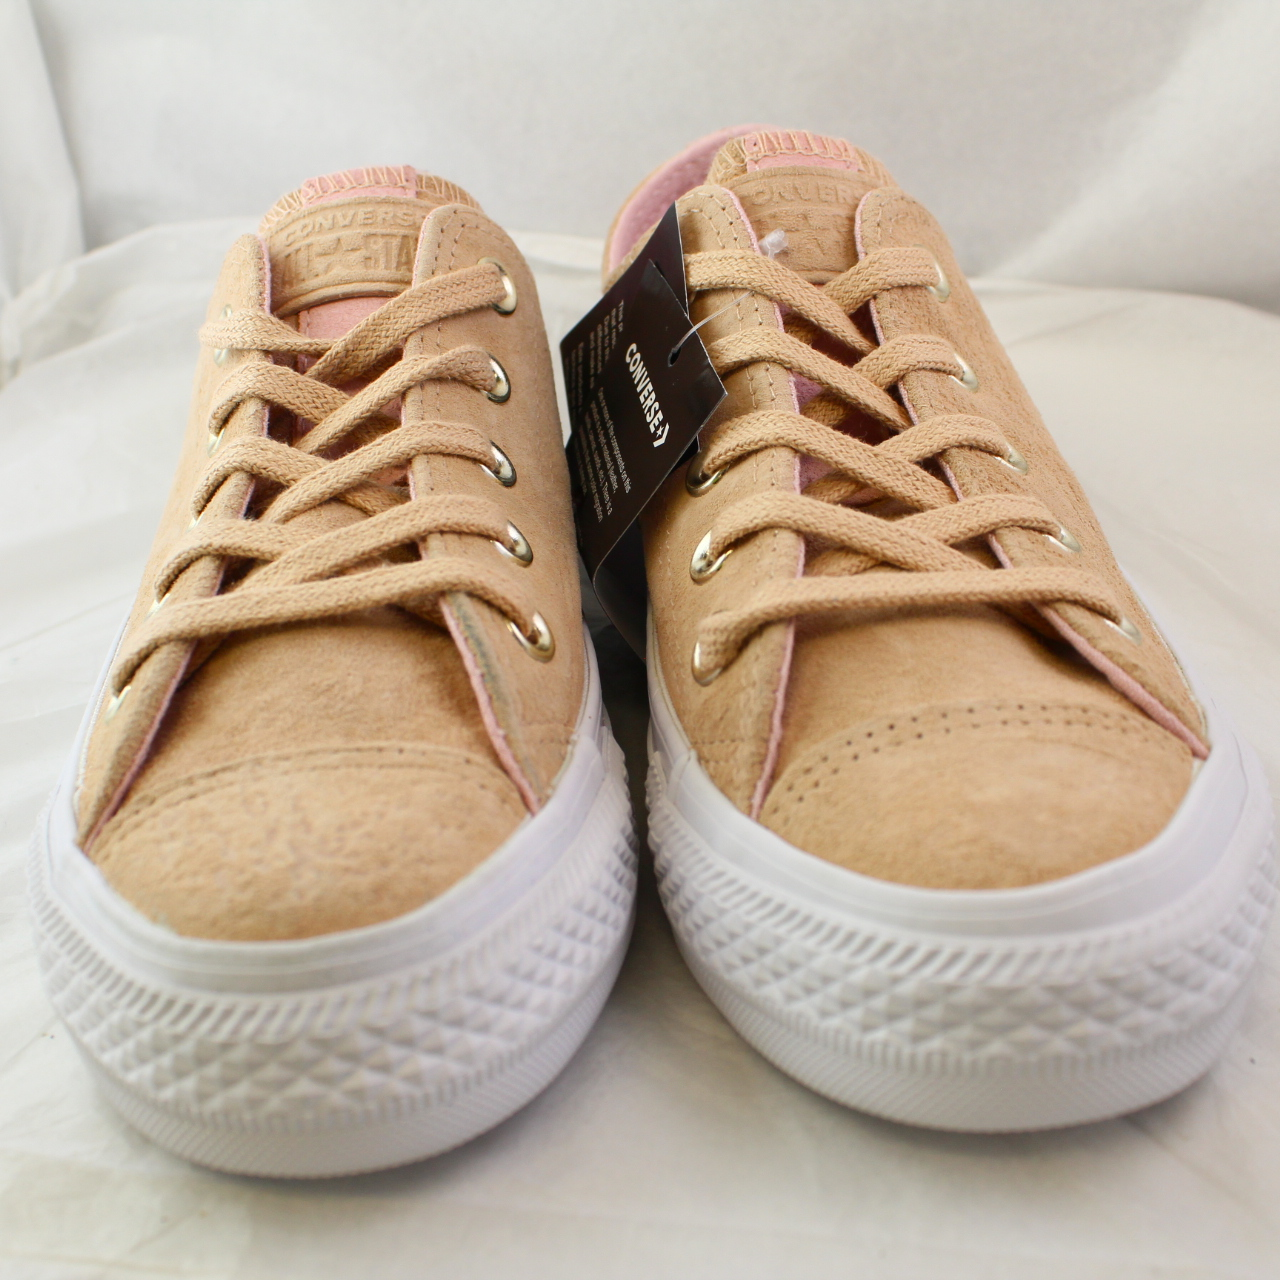 5e6c8d69d6ca Sentinel Womens Converse Cream Suede Lace Up Trainers Size UK 3  Ex-Display